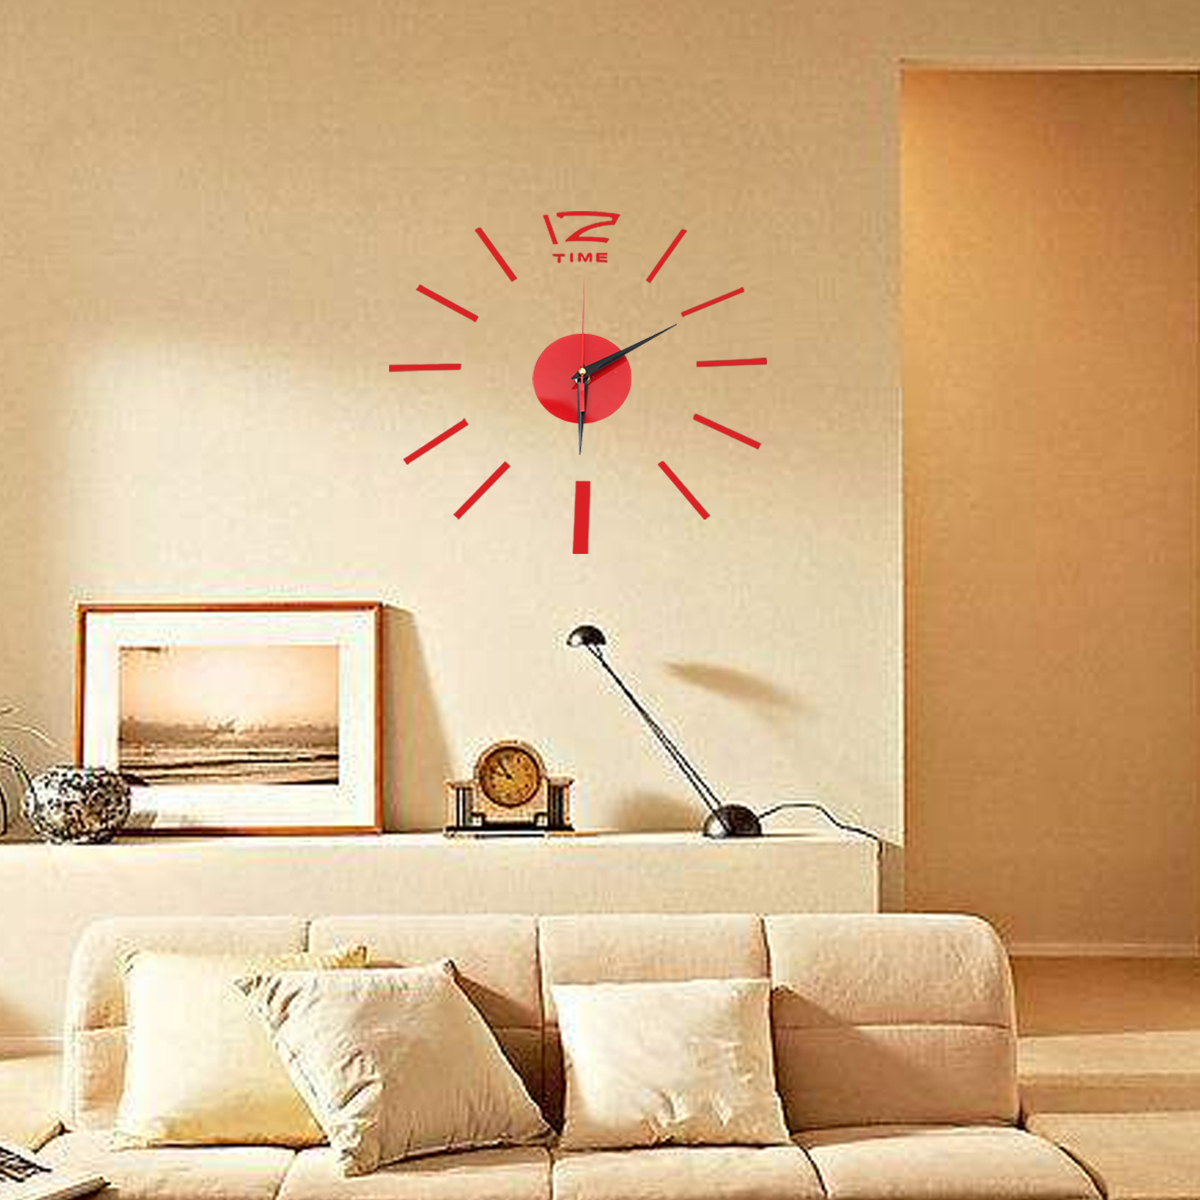 Other gadgets 3d diy acrylic mirror sticker wall clock for Modern living room gadgets